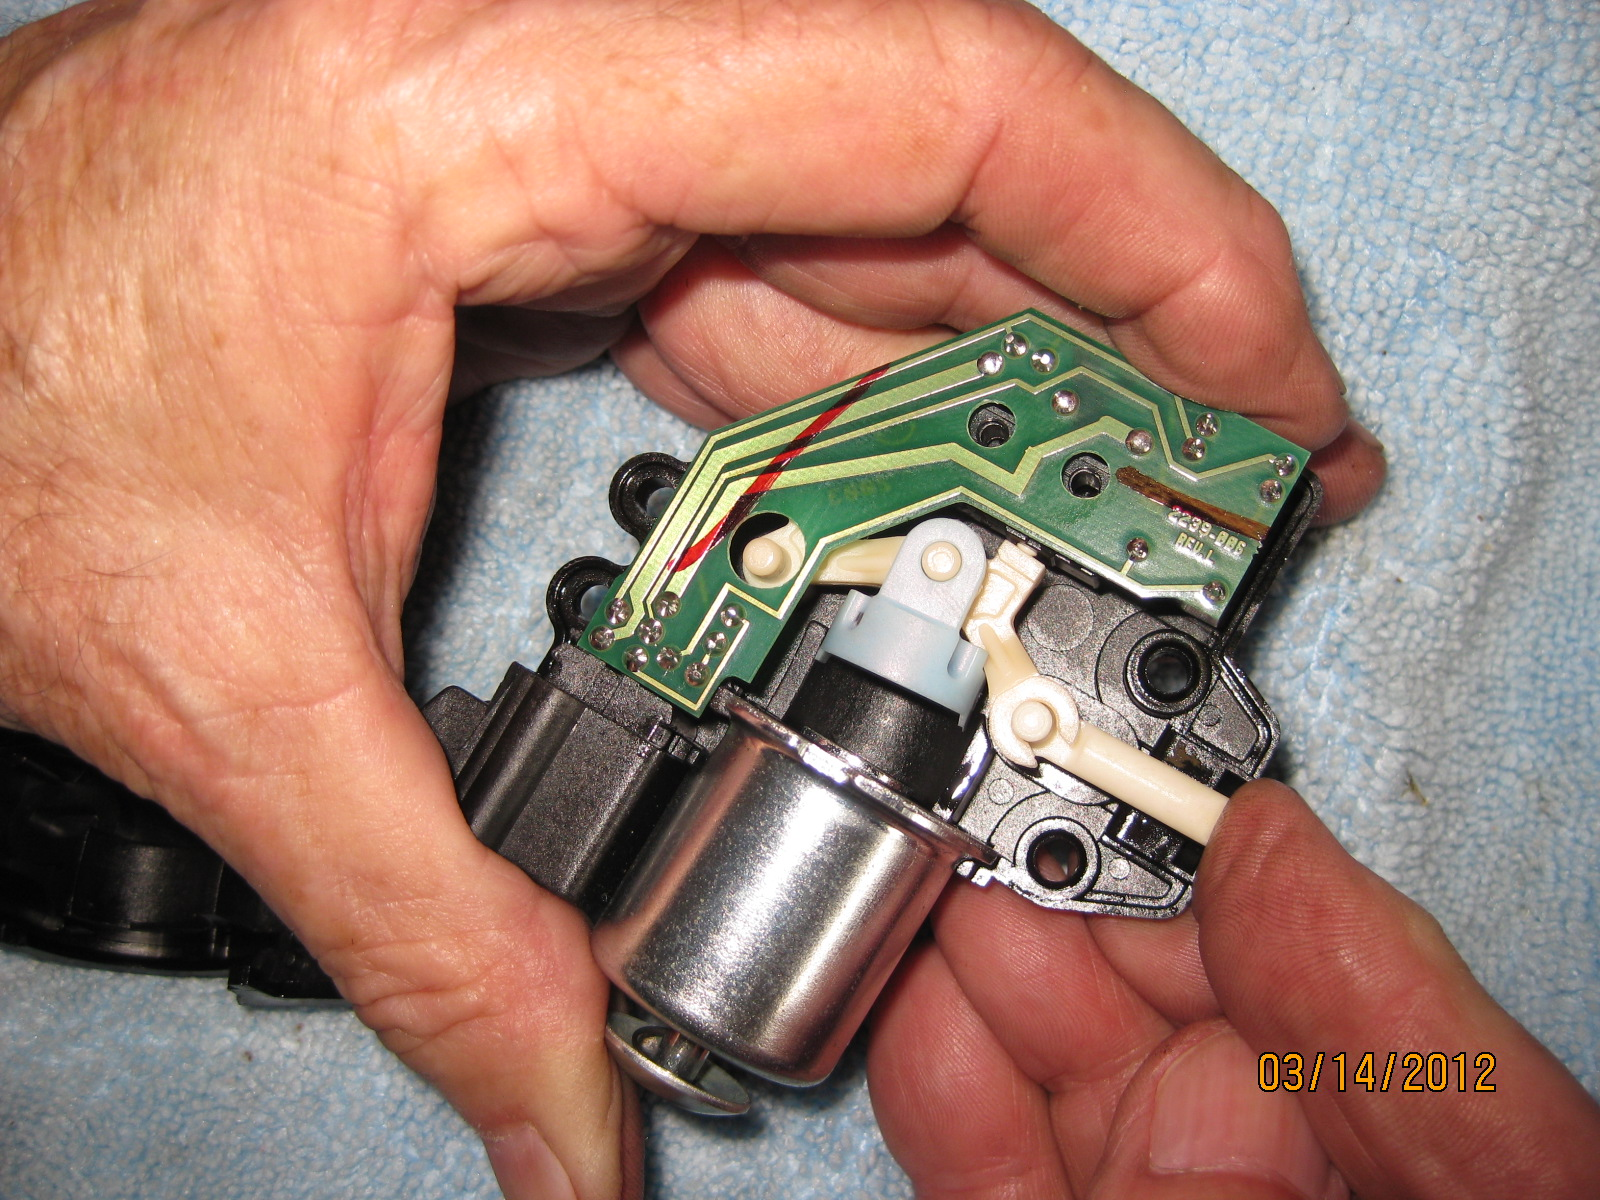 Shift Lock Control Actuator/Pictures - Chevy SSR Forum on chevy trailblazer trailer wiring diagram, 2003 trailblazer radio diagram, 2003 trailblazer back bumper, 2003 trailblazer valves, 2003 trailblazer radiator, 2003 trailblazer trailer plug, 2003 trailblazer starting diagram, 2003 trailblazer seat diagram, 2008 trailblazer wiring diagram, 2003 trailblazer ignition, 2003 trailblazer speakers diagram, 2003 trailblazer suspension diagram, 2003 trailblazer radio fuse, 2003 trailblazer brake line diagram, 2003 trailblazer fuel pump, 2003 trailblazer exhaust diagram, 2003 trailblazer cooling system, 2003 trailblazer brake lights not working, 03 trailblazer wiring diagram, 2002 trailblazer wiring diagram,